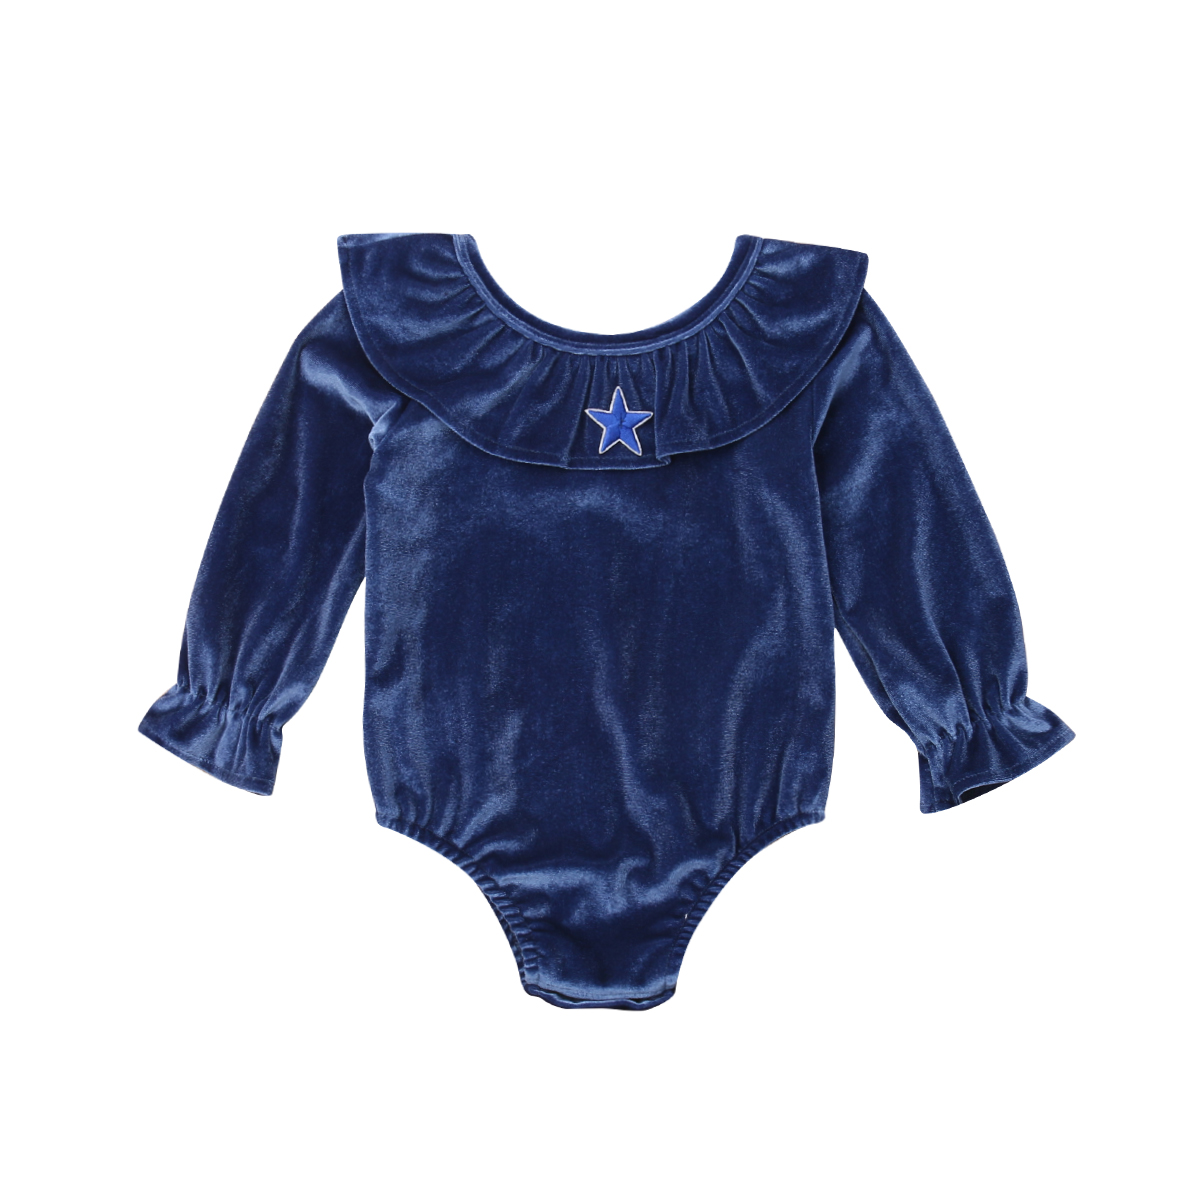 Quality Xmas Cute Infant Kids Baby Girls Warm Velvet Bodysuits Ruffles Long Sleeve Blue Jumpsuits Clothes Outfit 0-18m Superior In